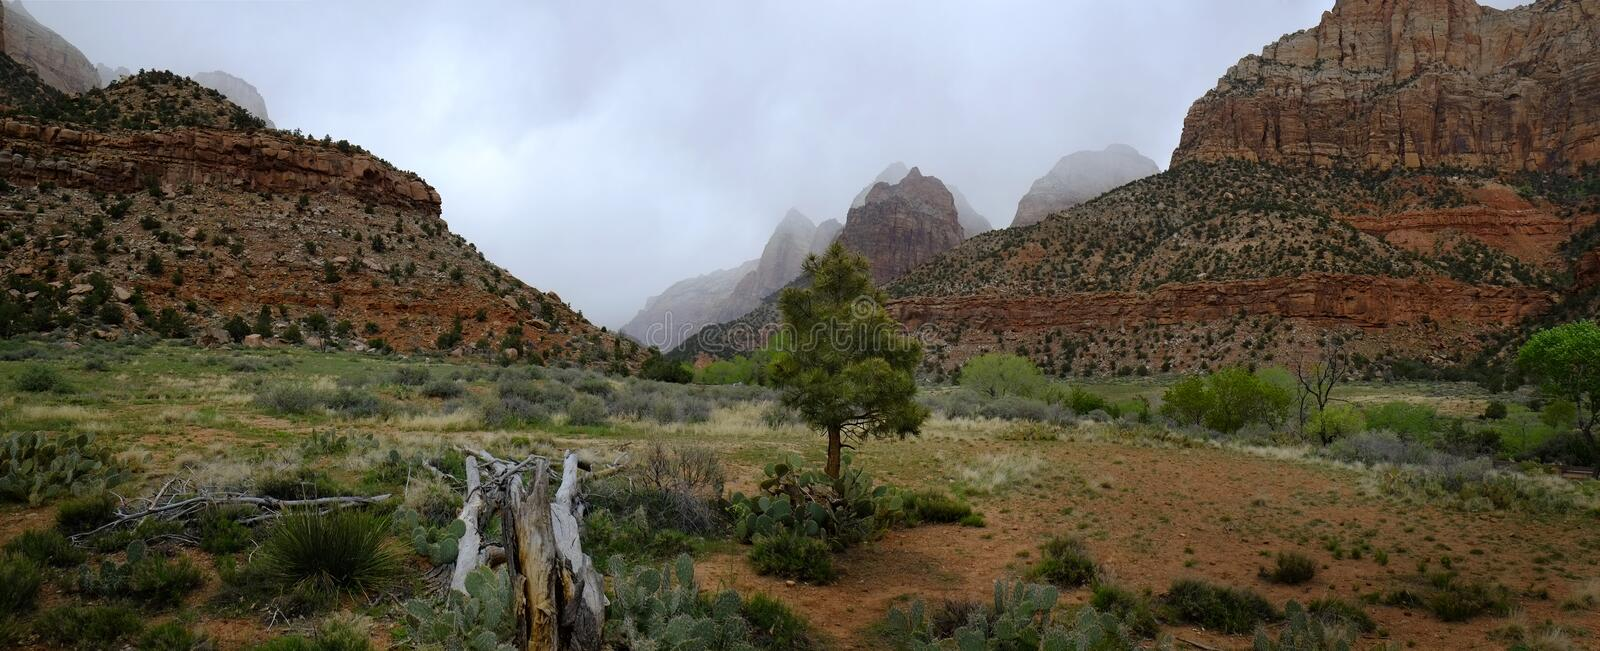 Zions National Park Mountains Rainstorm Trees Foliage. Zions National Park mountain in rainstorm with trees and foliage stock photos